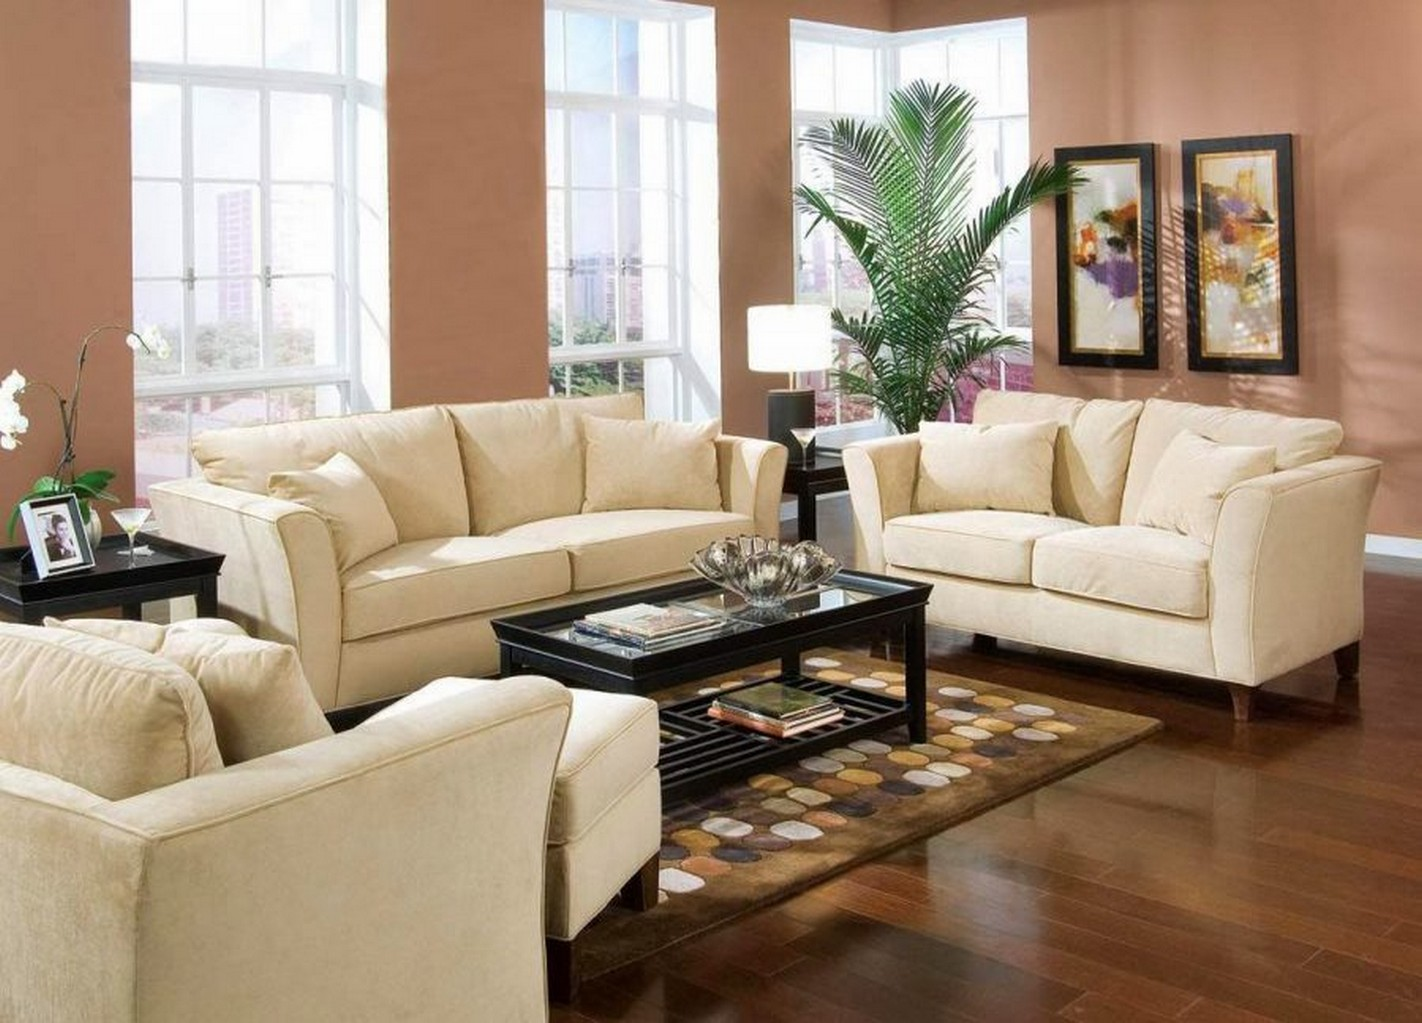 Small Living Room Furniture Ideas - FELISH HOME PROJECT